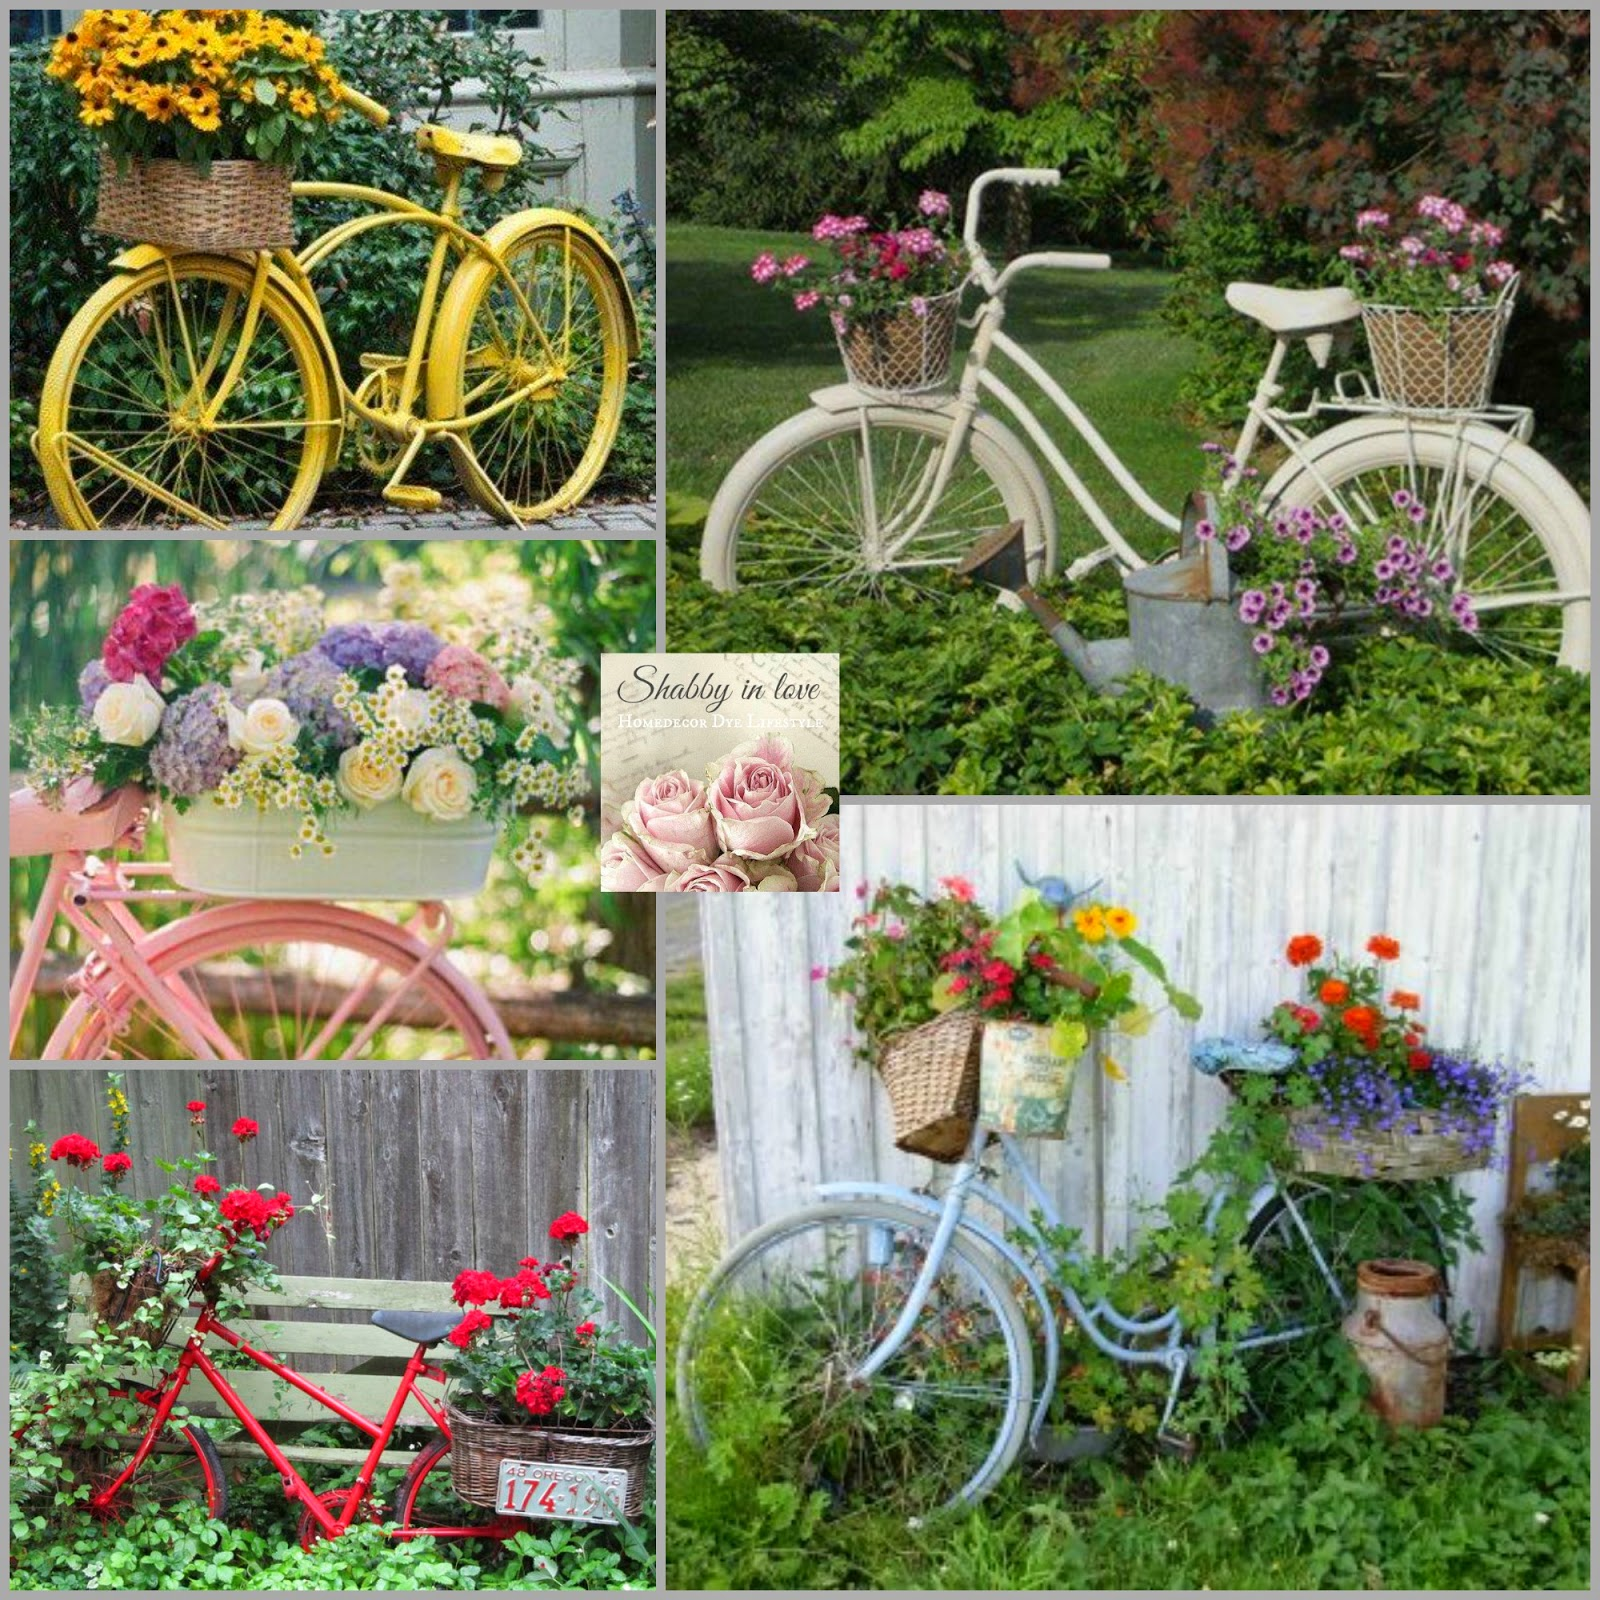 Shabby in love lovely garden container ideas for Flower garden ornaments